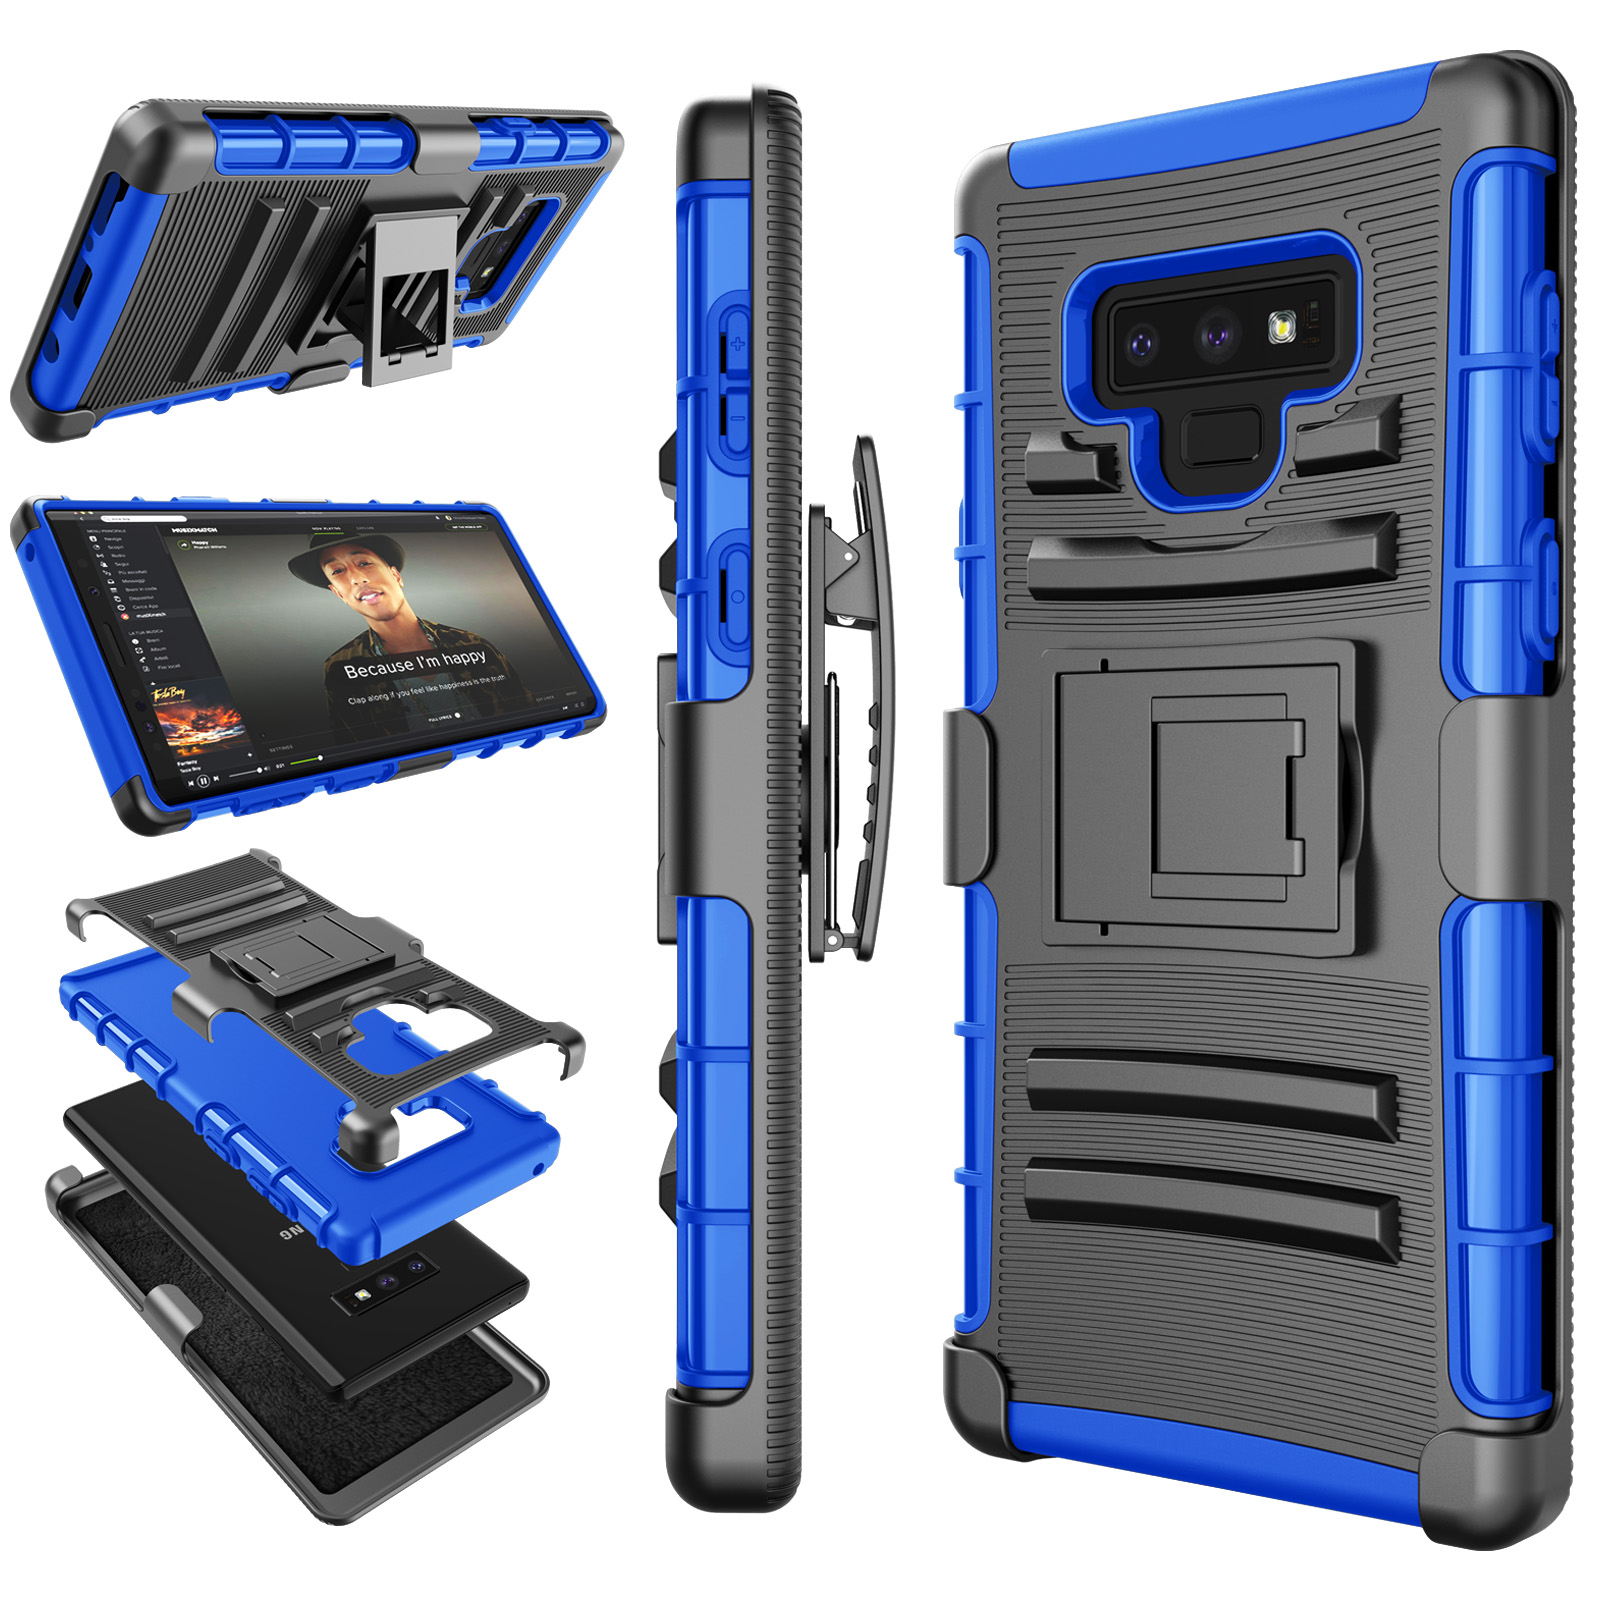 Galaxy Note 8 / Note 9 Case, Samsung Note 9 Holster Clip, Tekcoo Shock Absorbing Swivel Locking Belt [Relic Camo] Defender Heavy Full Body Kickstand Carrying Tank Armor Cases Cover